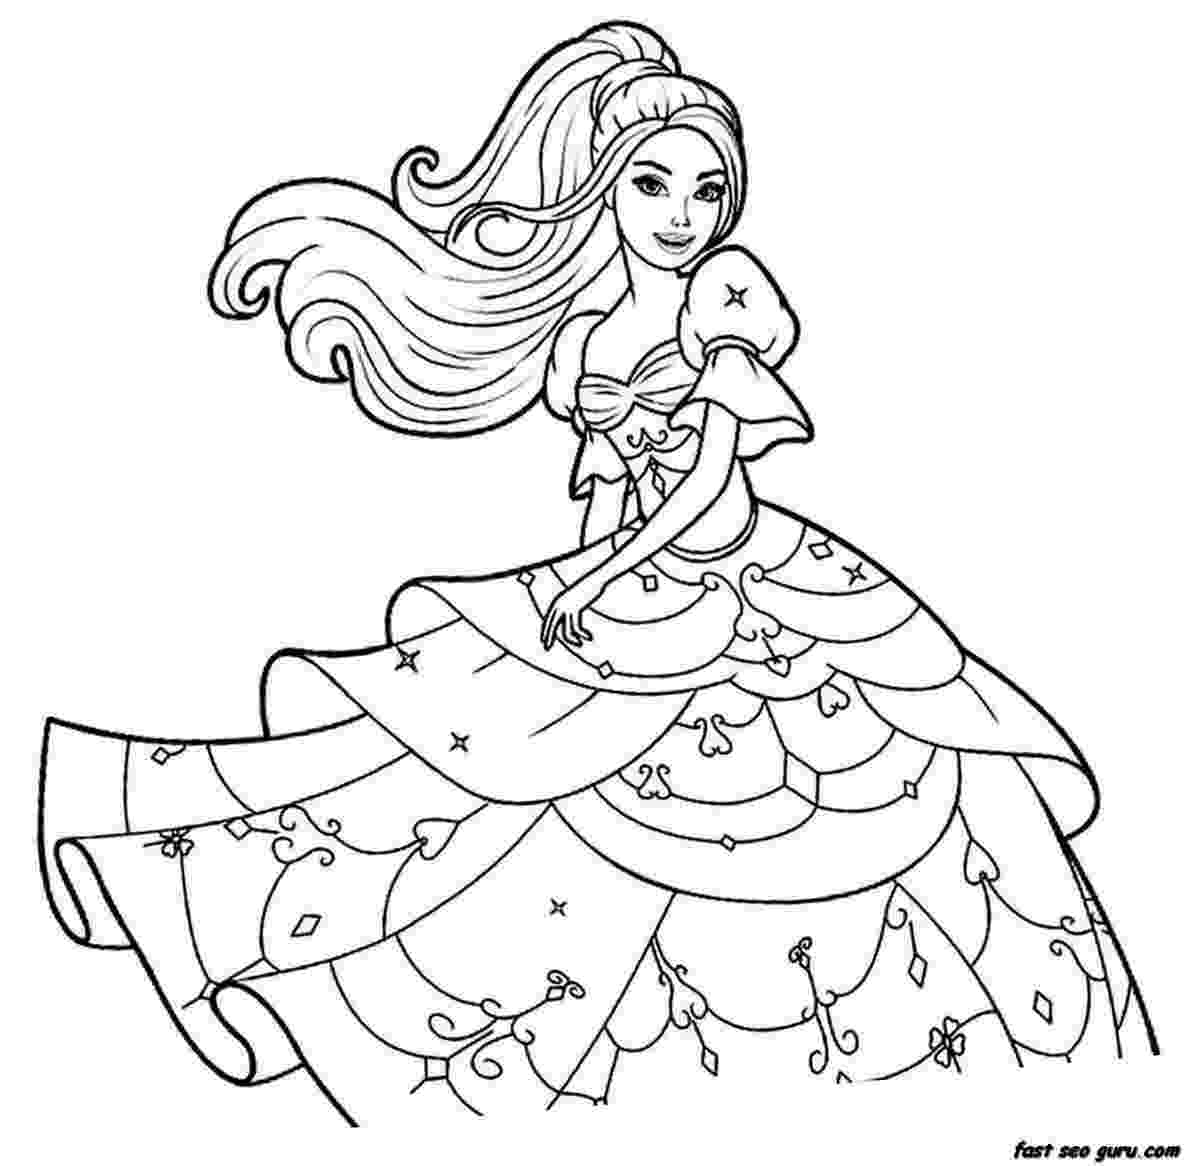 barbie girl colouring pictures 85 barbie coloring pages for girls barbie princess girl pictures colouring barbie